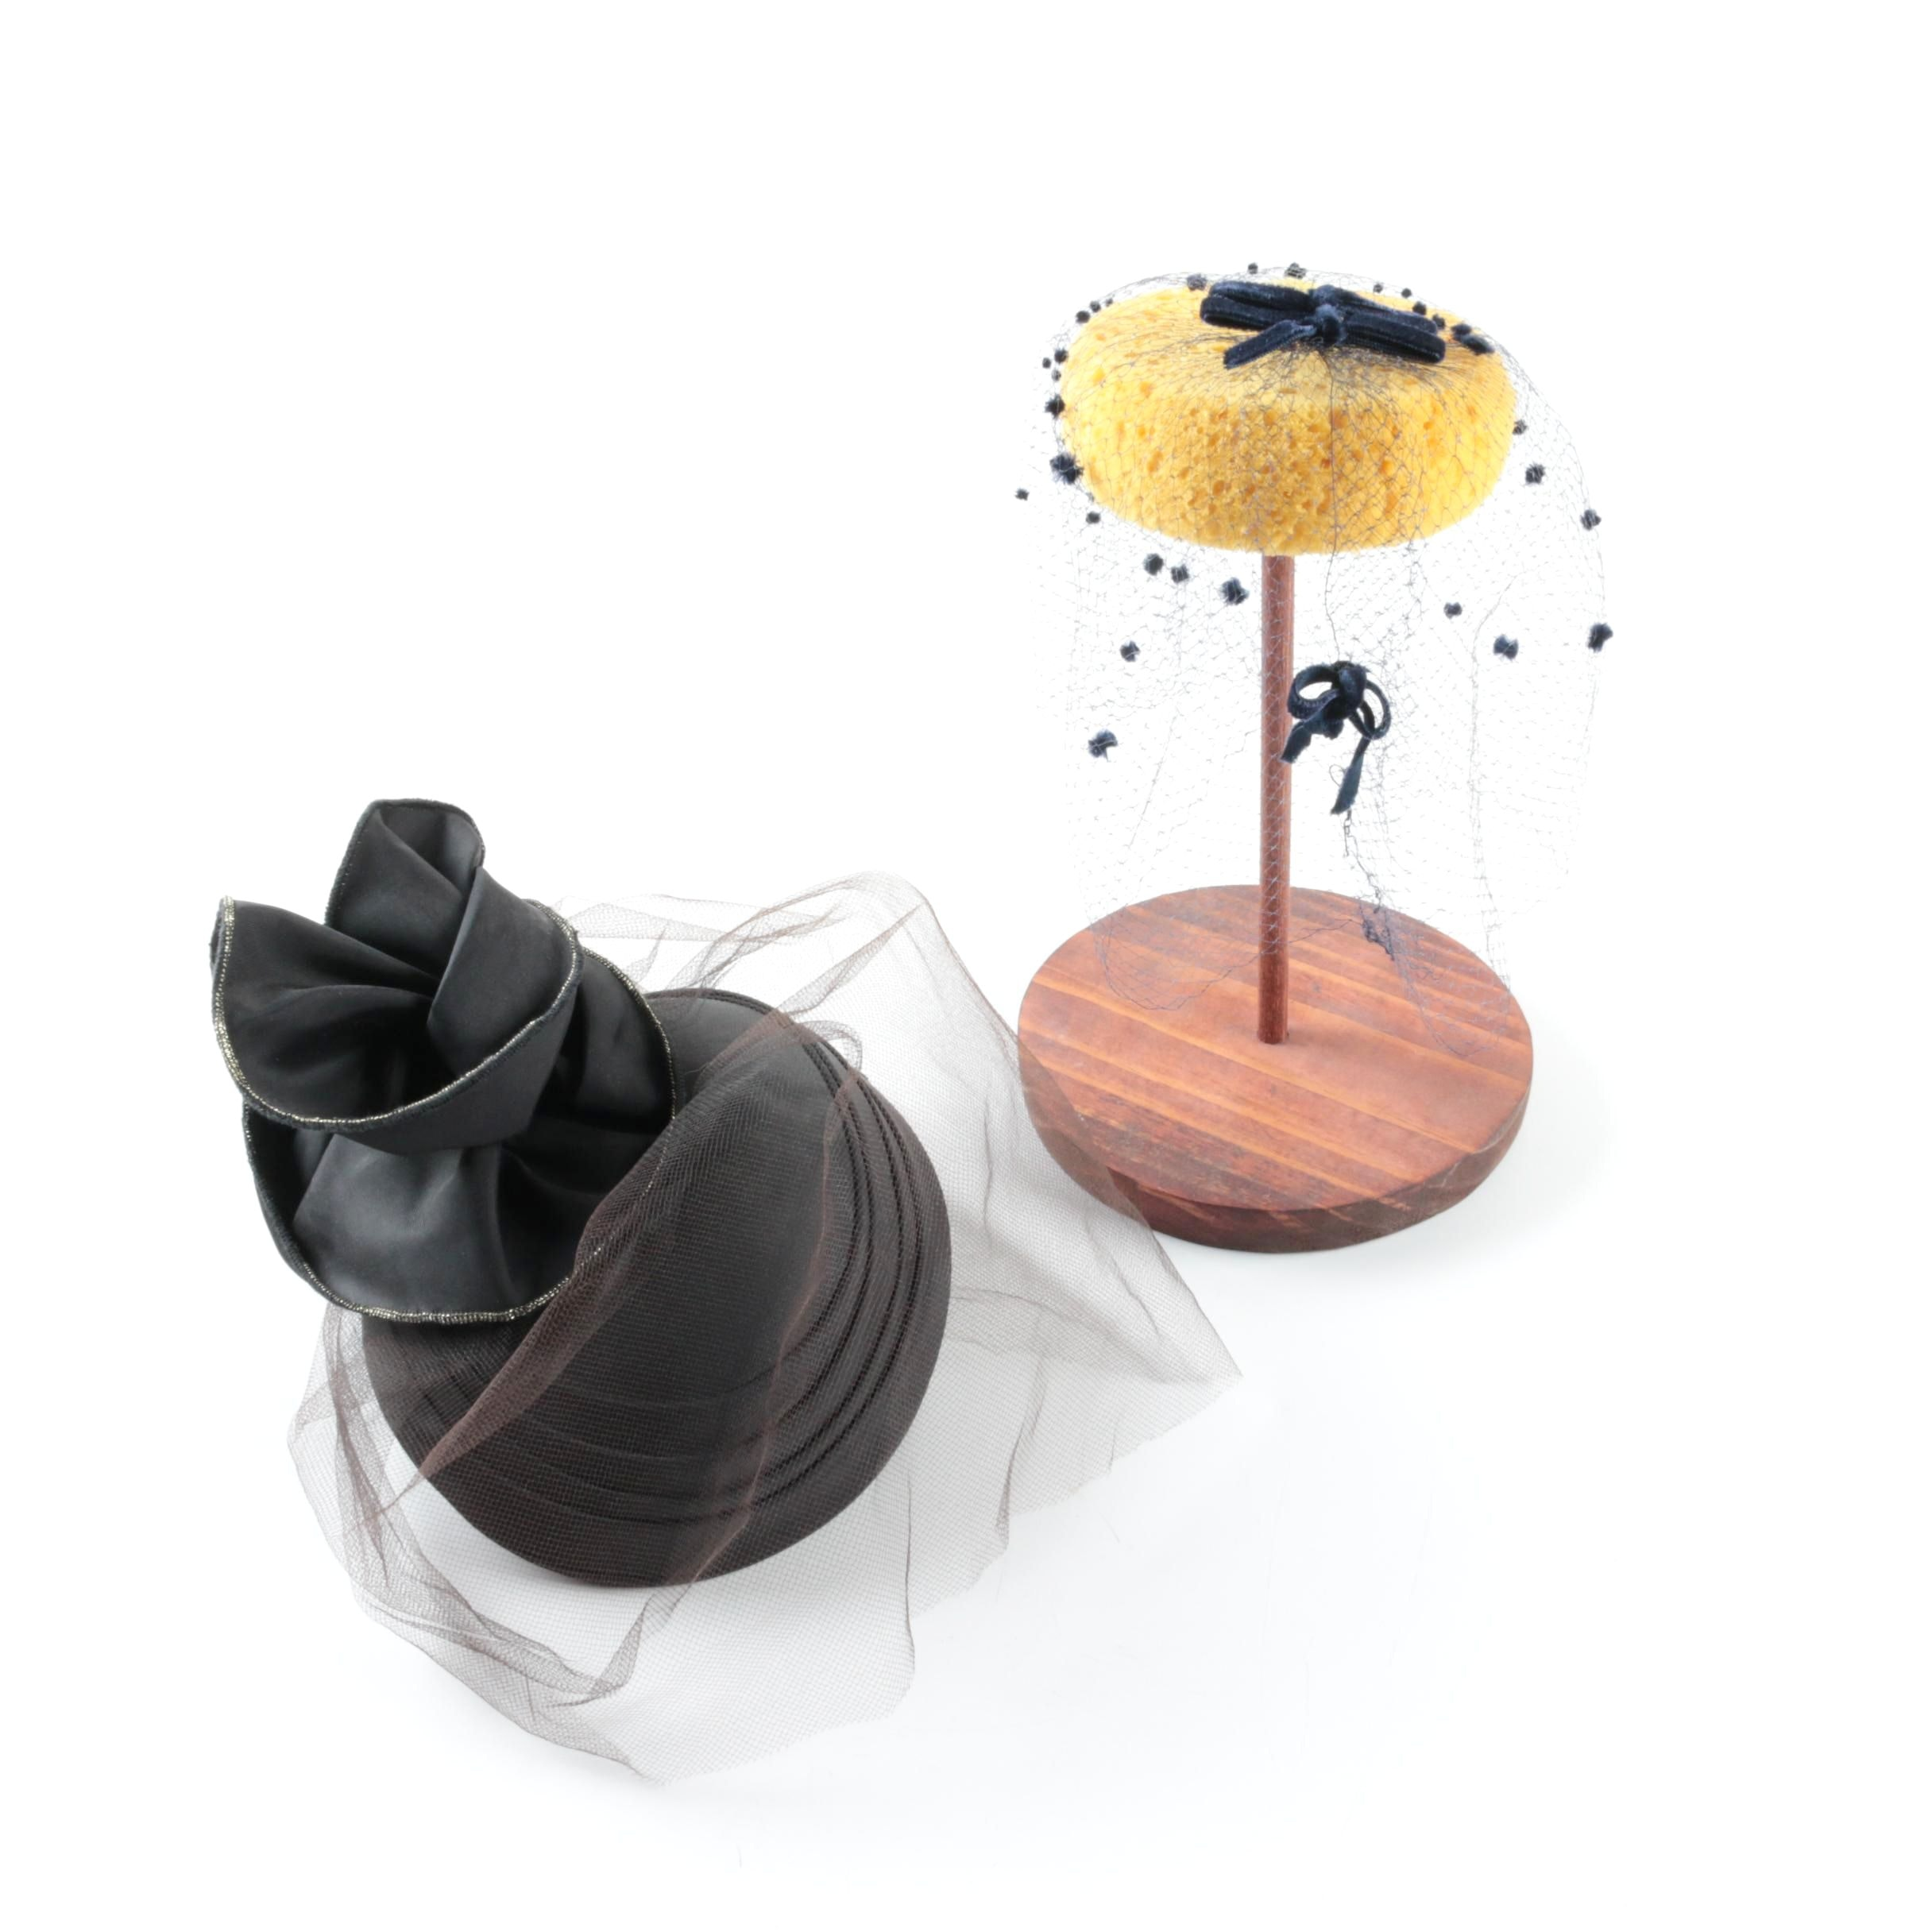 Fascinators with Mesh Veils and Hat Stand